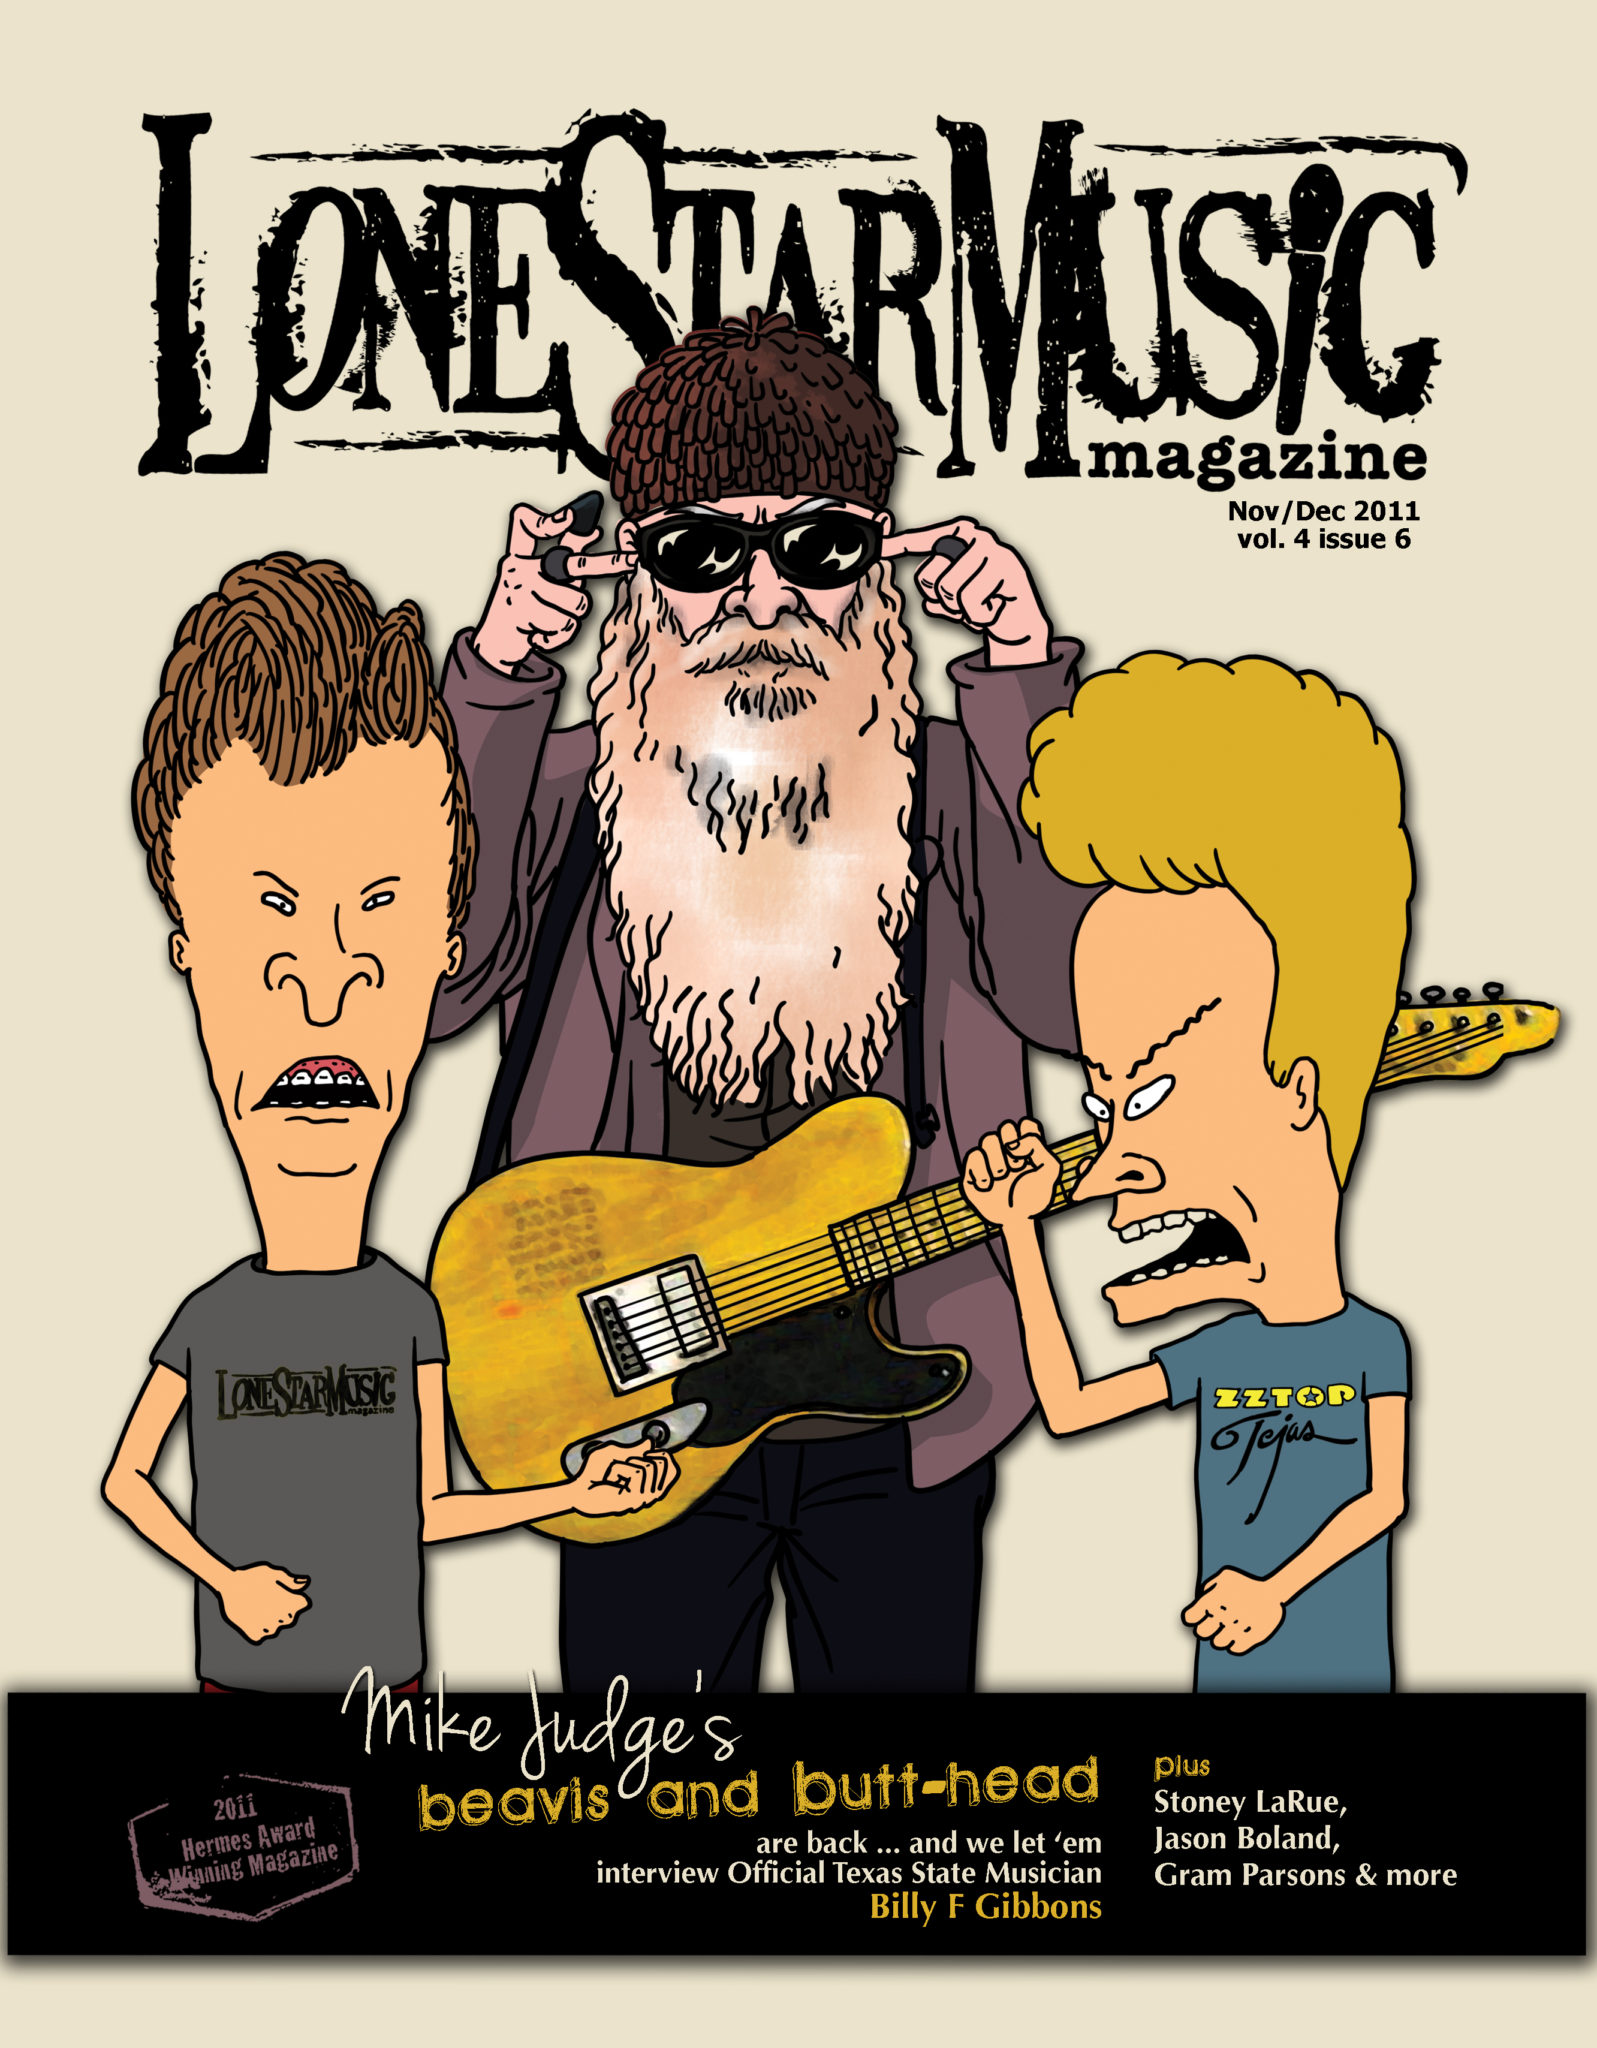 Lsm cover story mike judges beavis and butt head lone star music lsm novdec 2011 illustration by mike judge chris song voltagebd Gallery